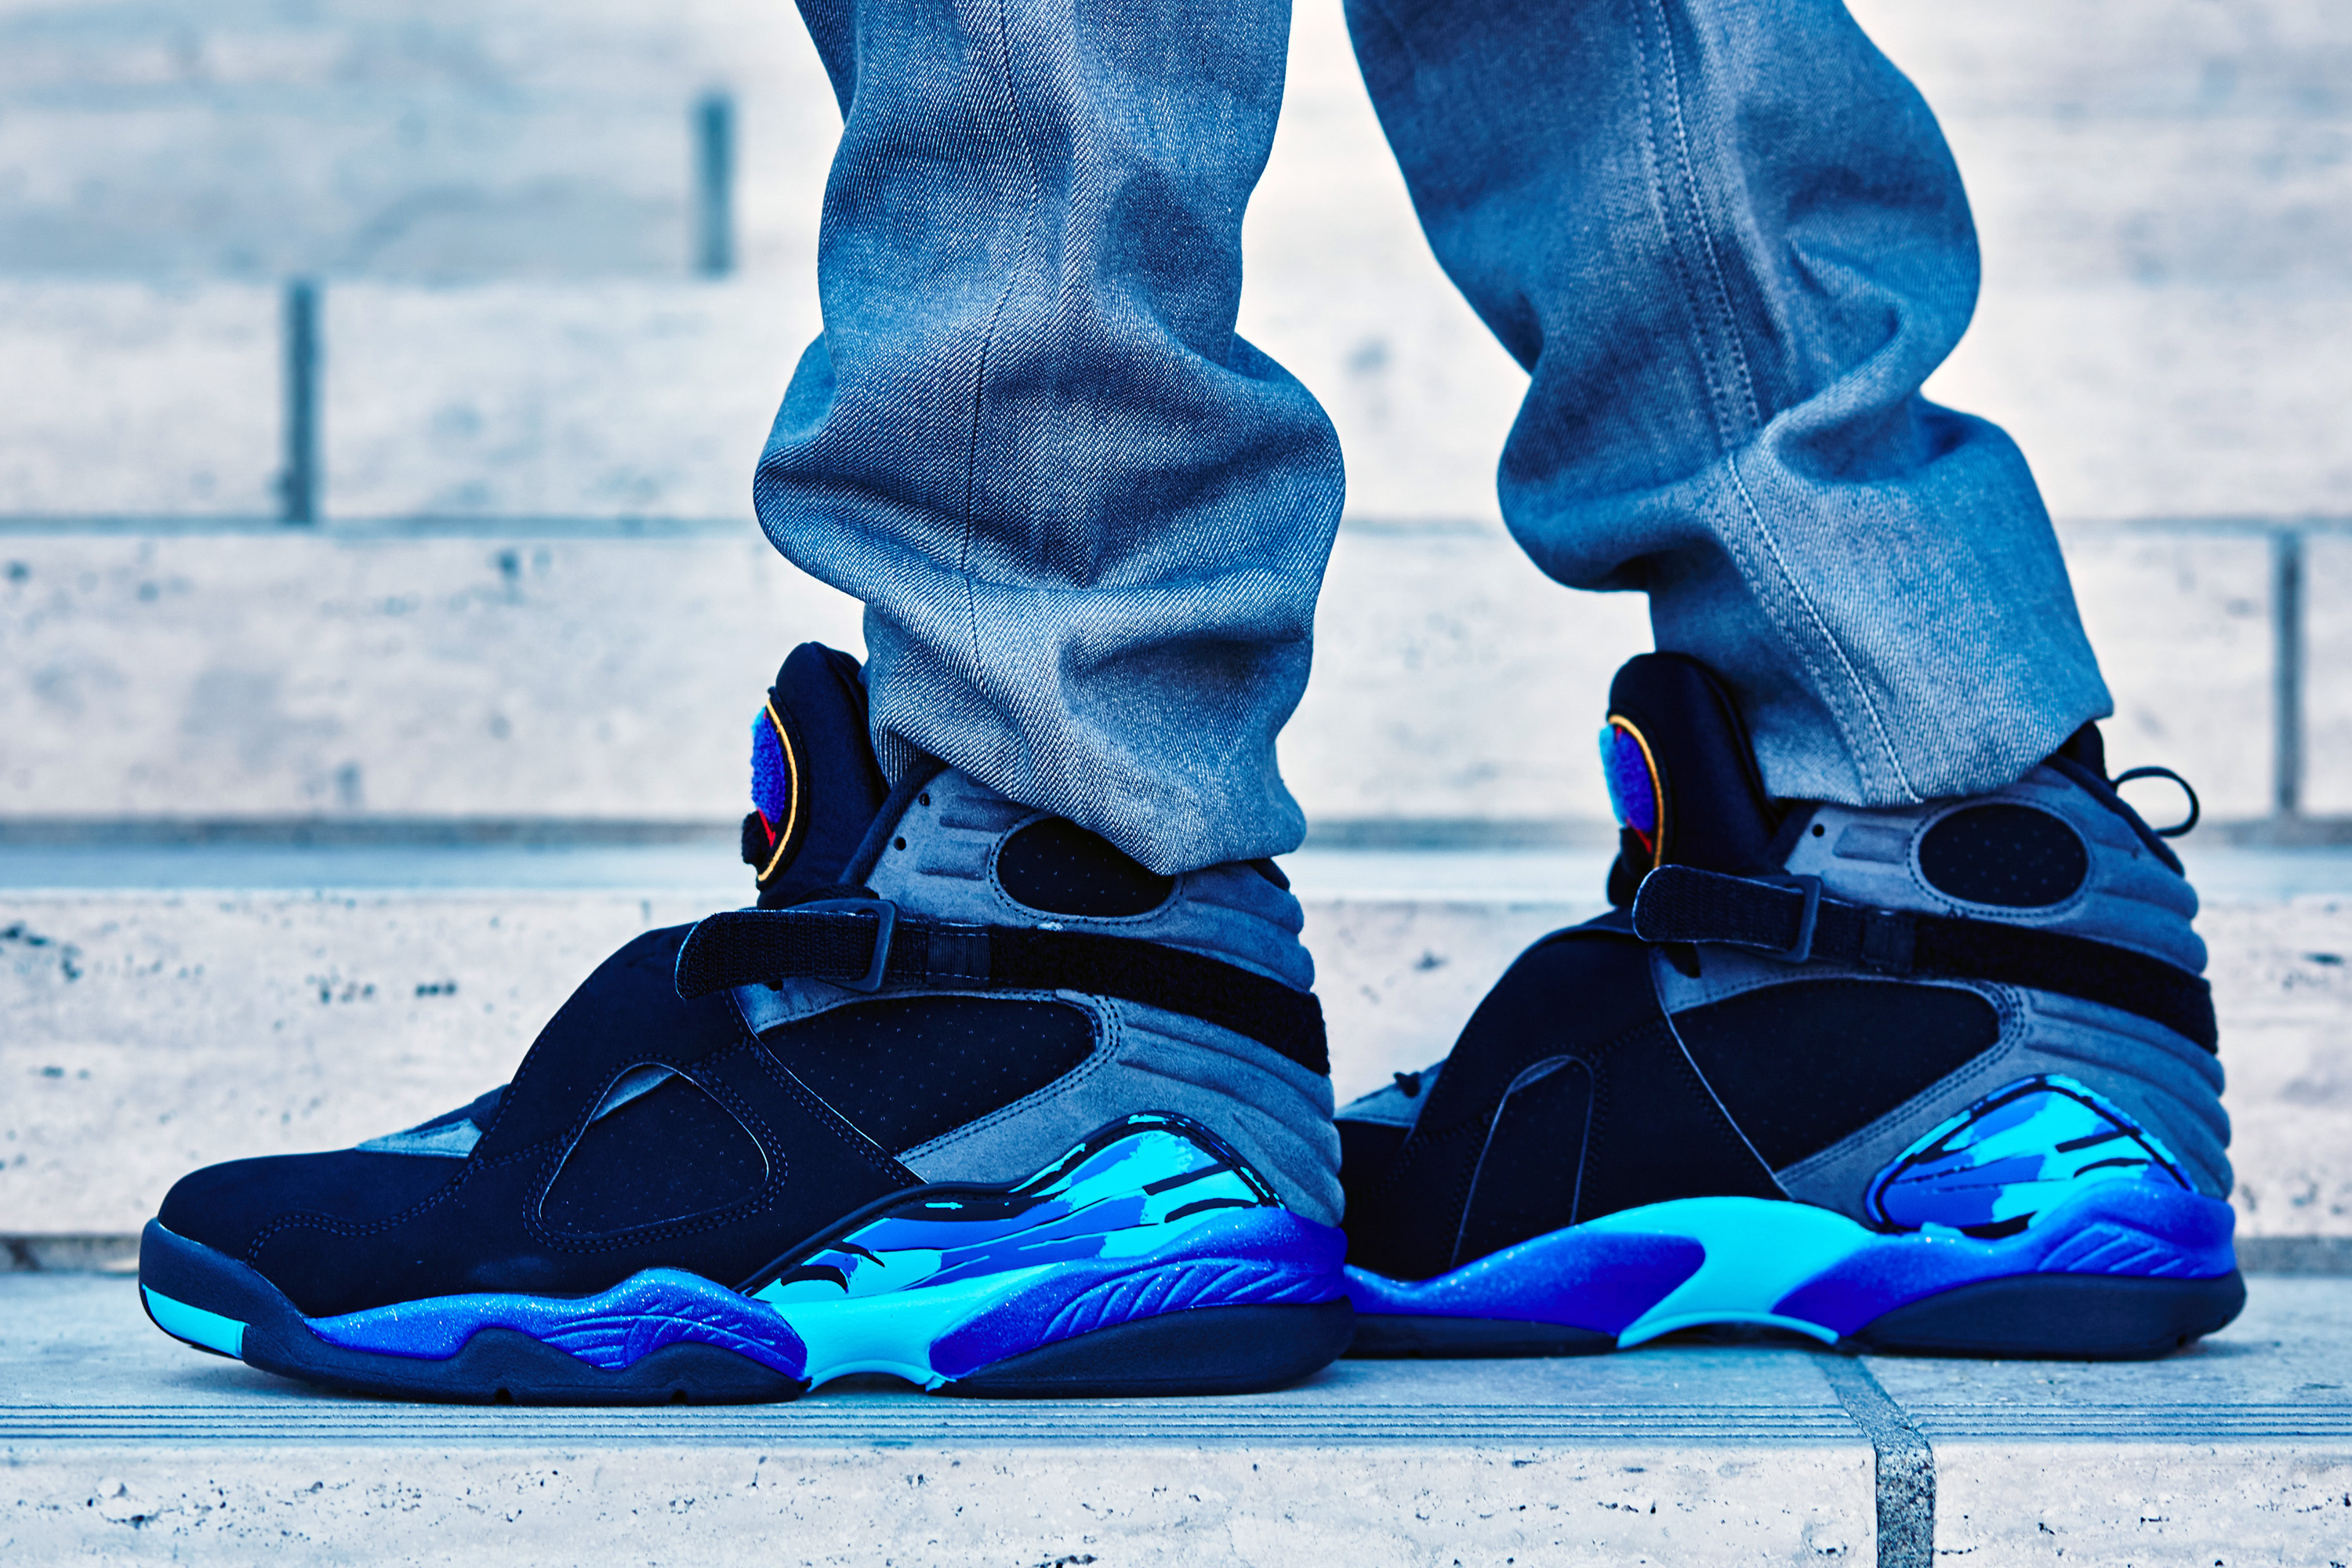 Air Jordan 8 Aqua On-Foot Look